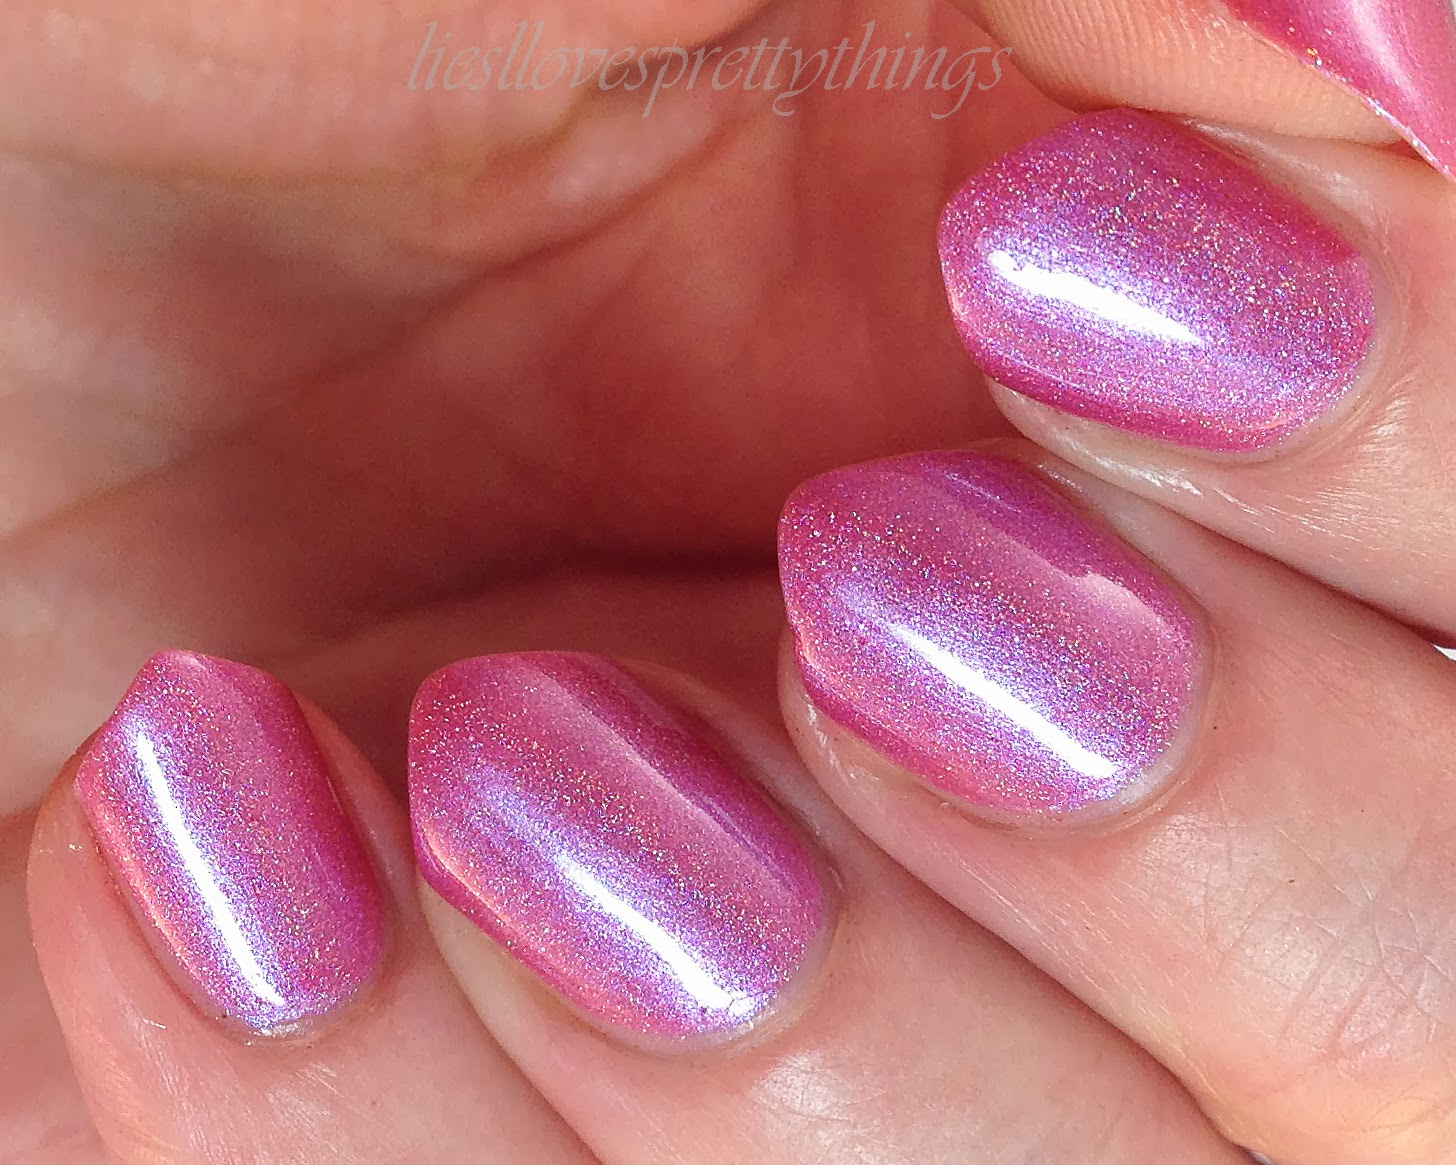 Celestial Cosmetics Moonlight Glow swatch and review